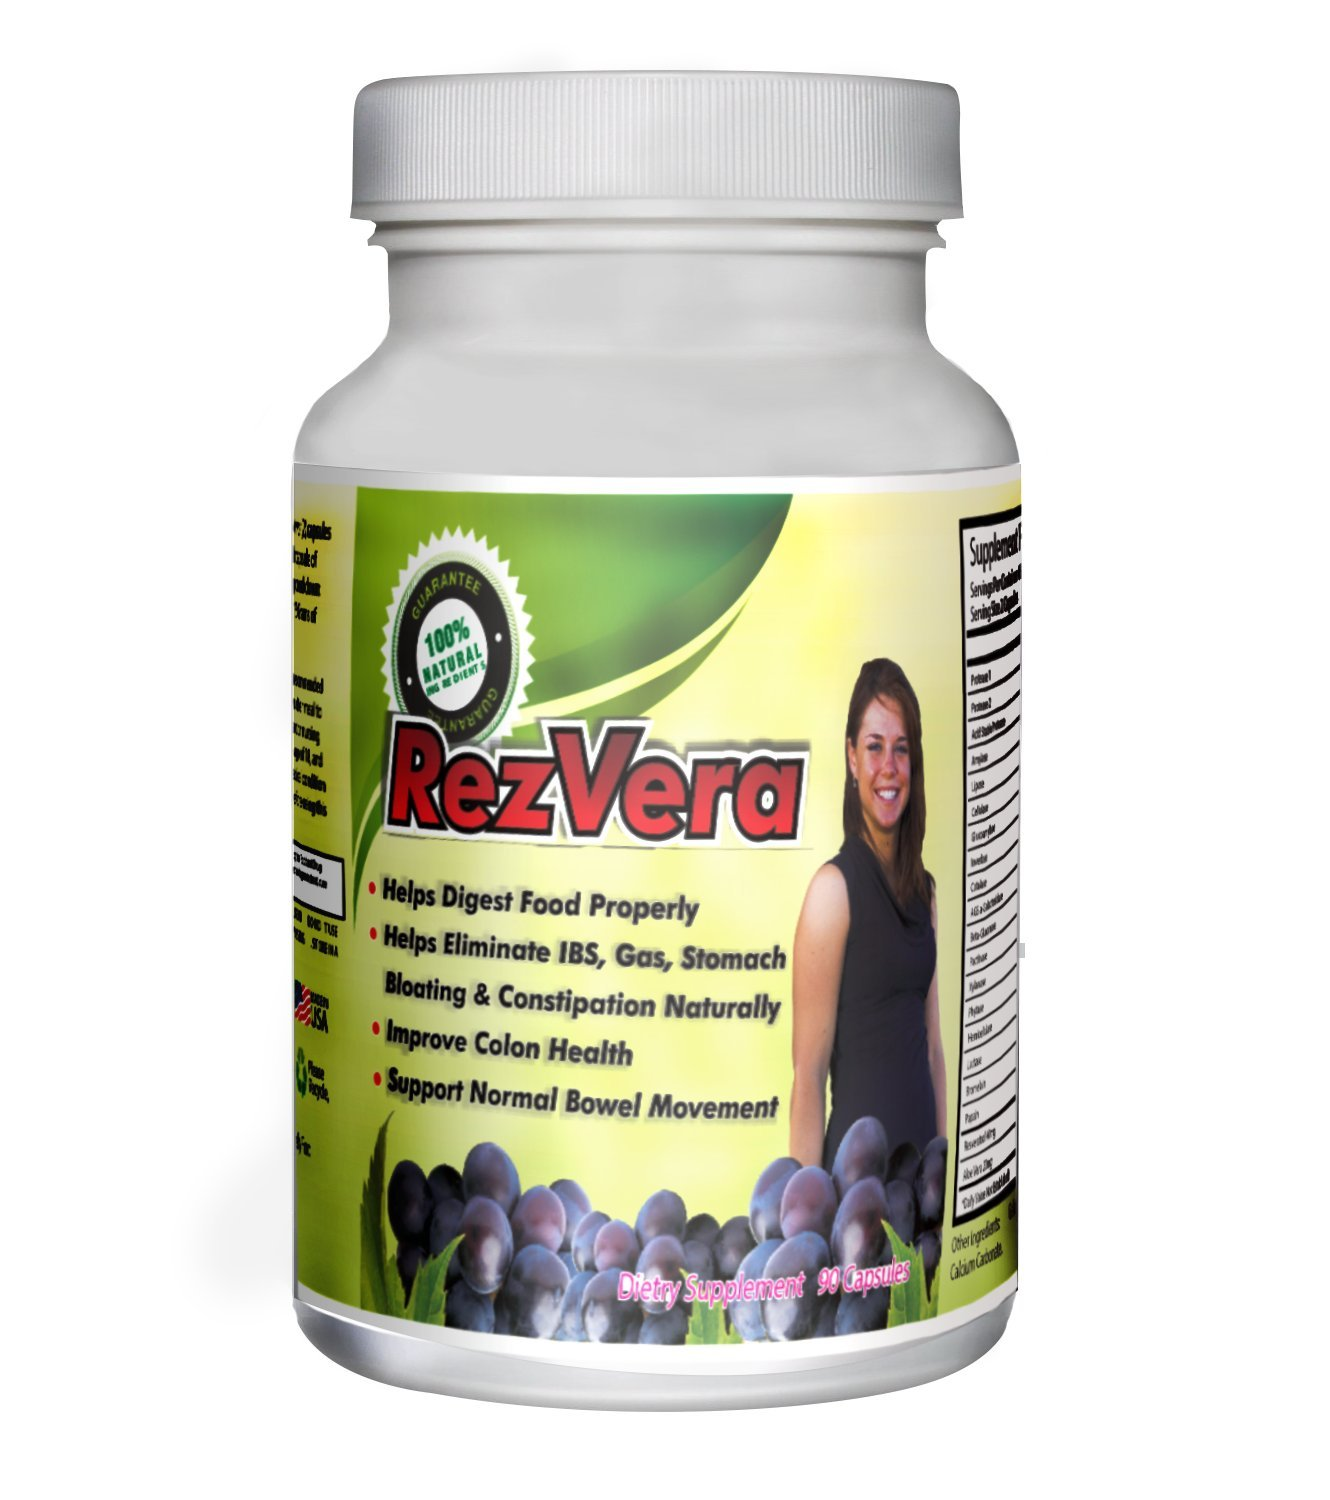 #1 Best All Natural Digestive Supplement for IBS Irritable Bowel Syndrome Stomach Bloating Gas Diarrhea Heartburn Acid Reflux Constipation Indigestion - RezVera 90 Capsules by RezVera